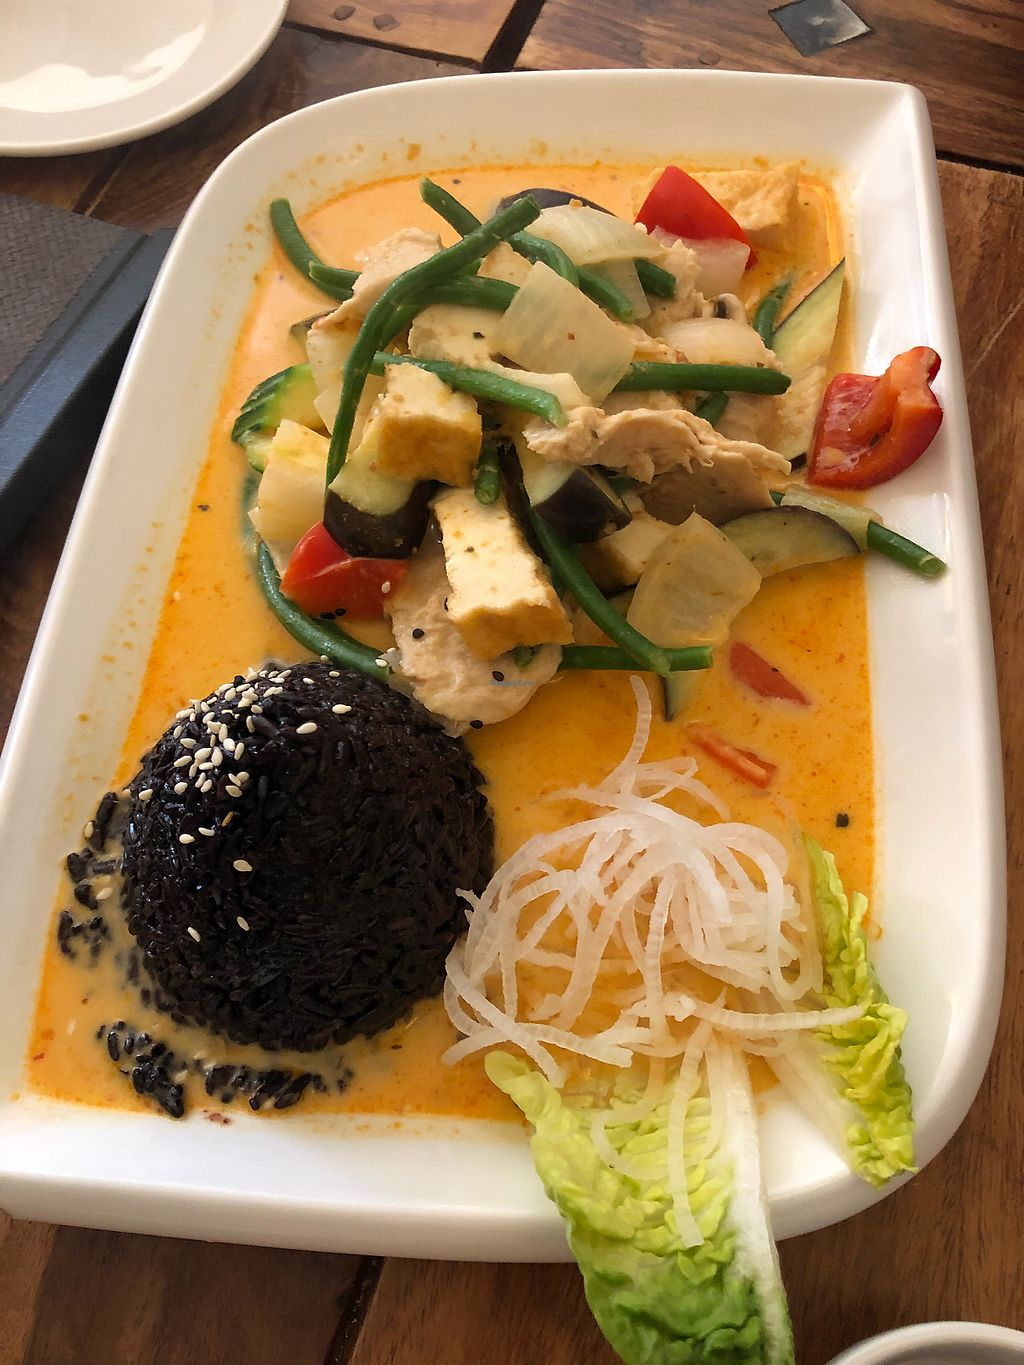 """Photo of Zen House  by <a href=""""/members/profile/GergelyZelena"""">GergelyZelena</a> <br/>Black-rice chicken - imitat curry <br/> April 6, 2018  - <a href='/contact/abuse/image/70605/381545'>Report</a>"""